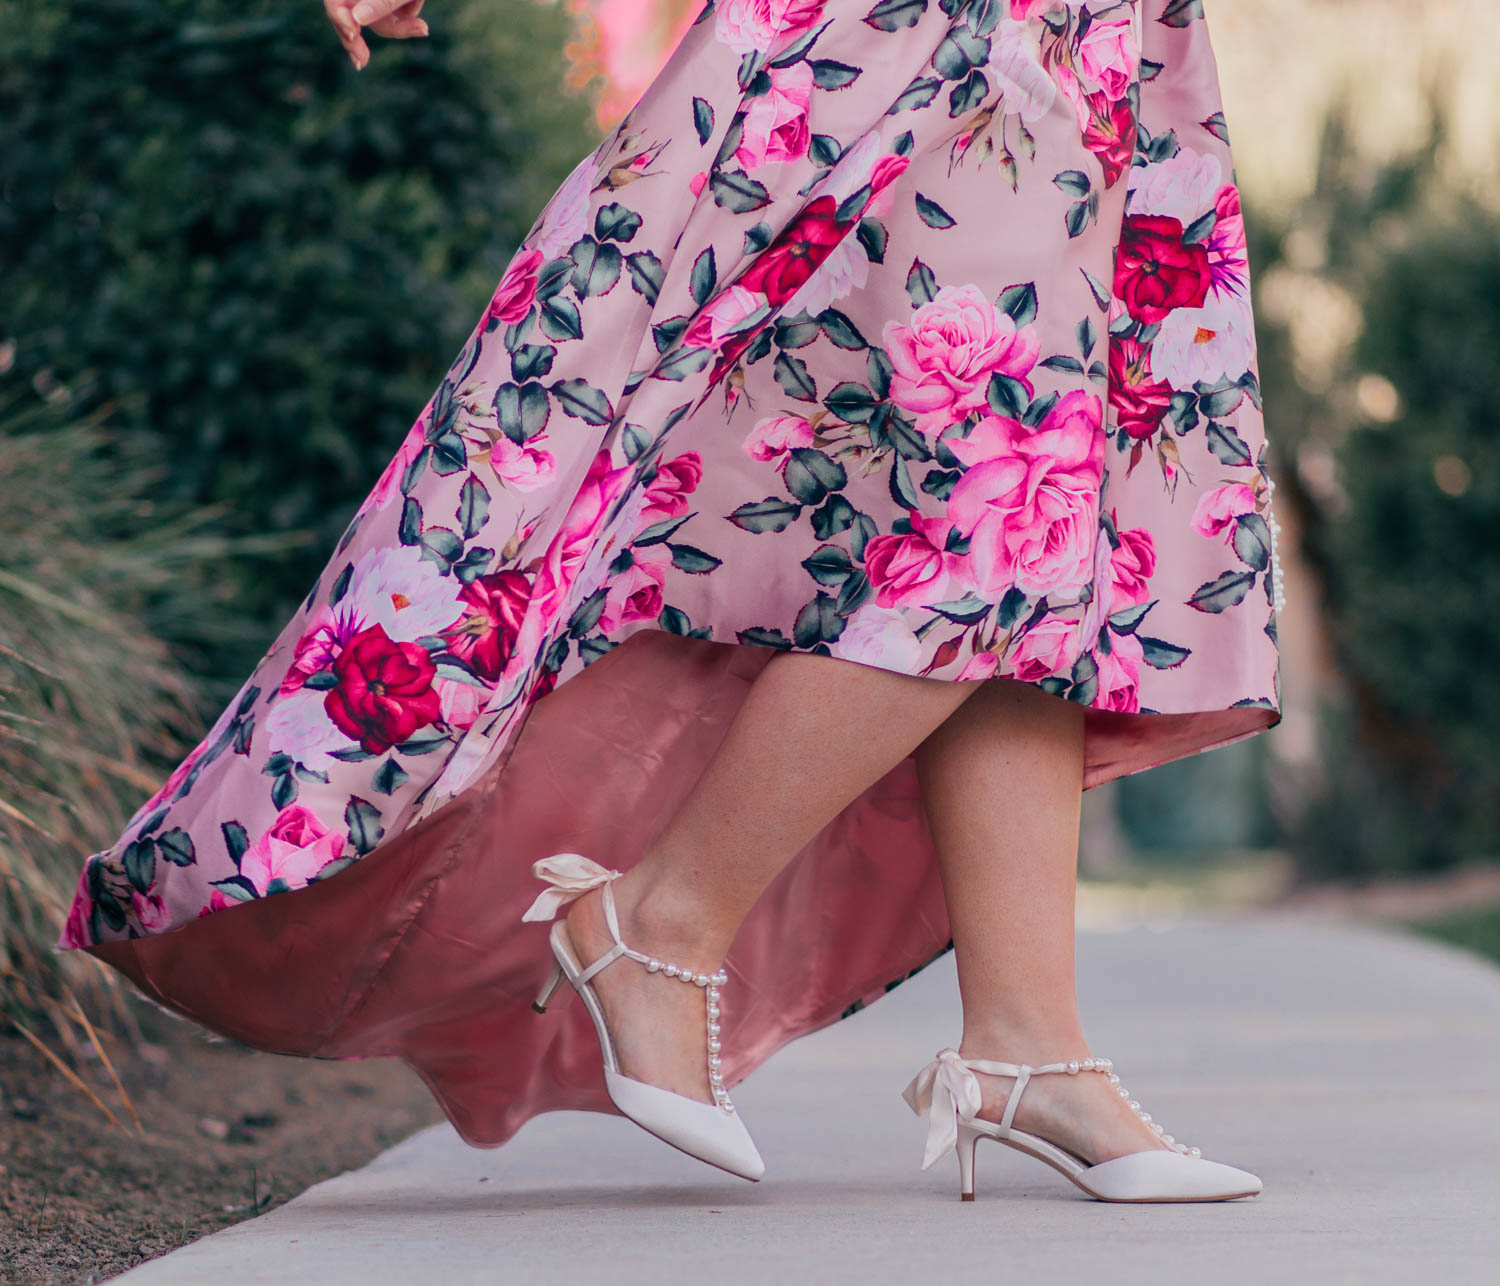 Elizabeth Hugen of Lizzie in Lace shares her girly shoe collection including these pearl heels